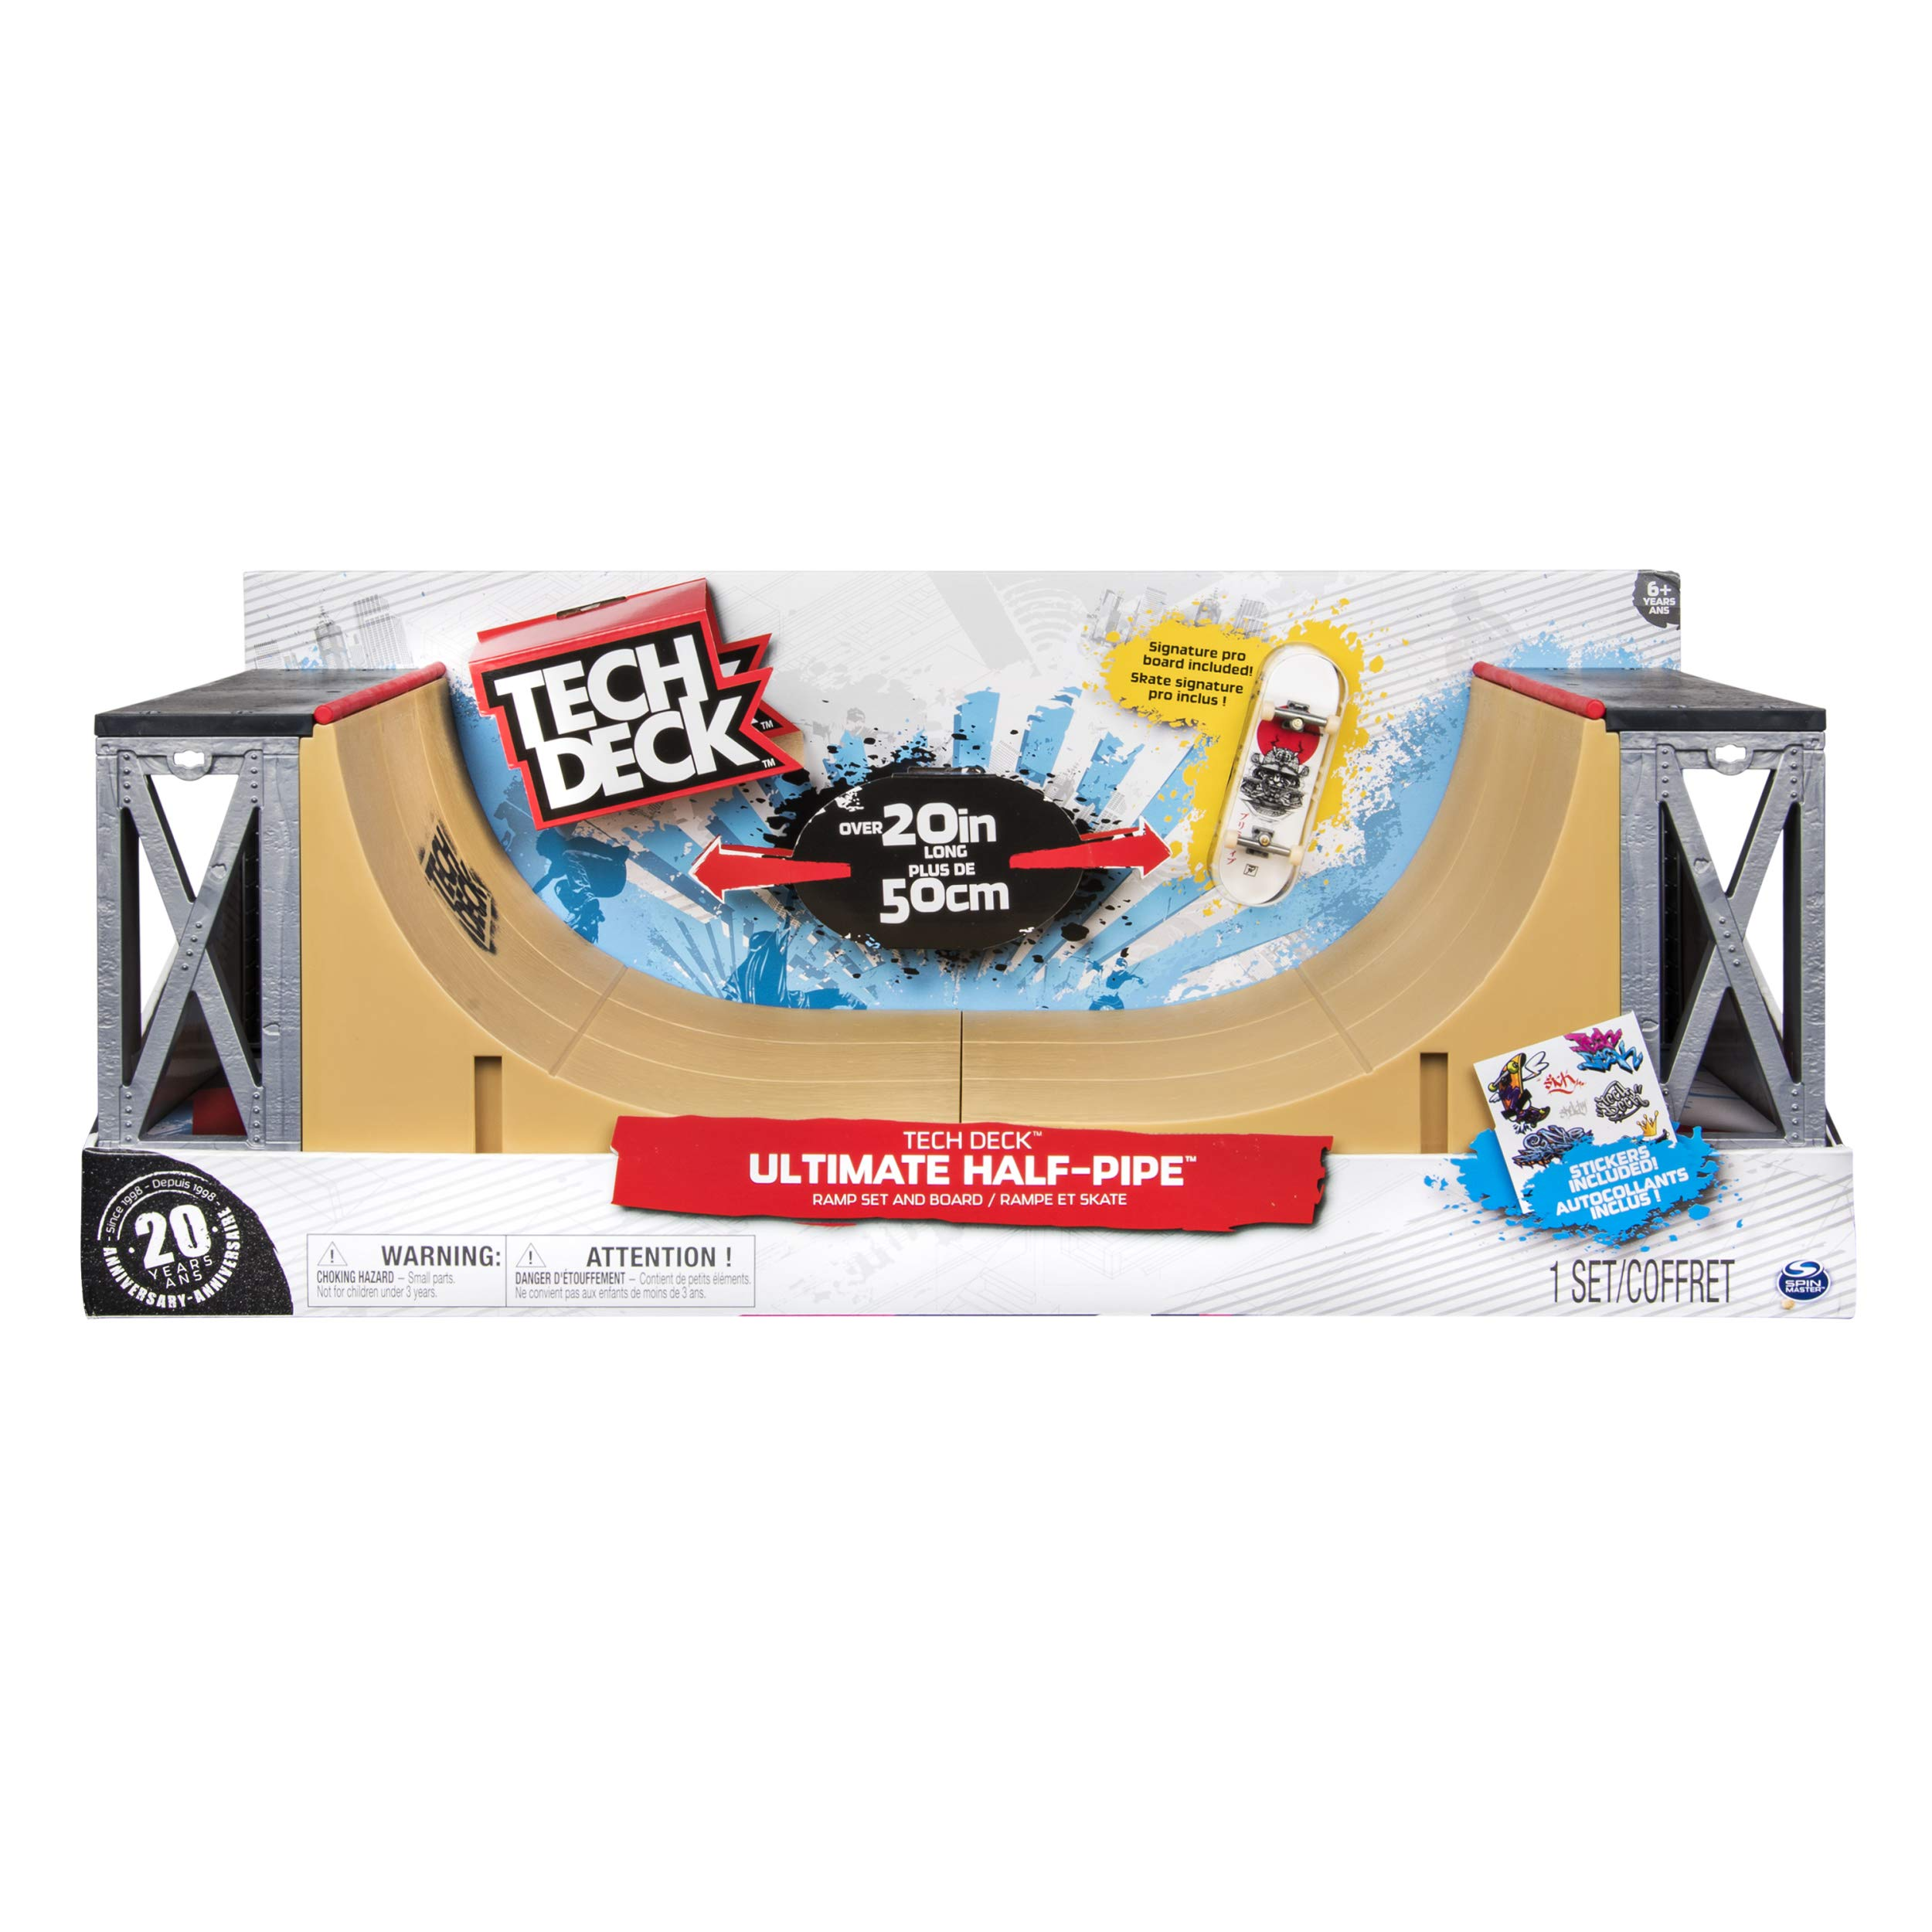 Tech Deck - Ultimate Half-Pipe Ramp and Exclusive Primitive Pro Model Finger Board, for Ages 6 and Up by TECH DECK